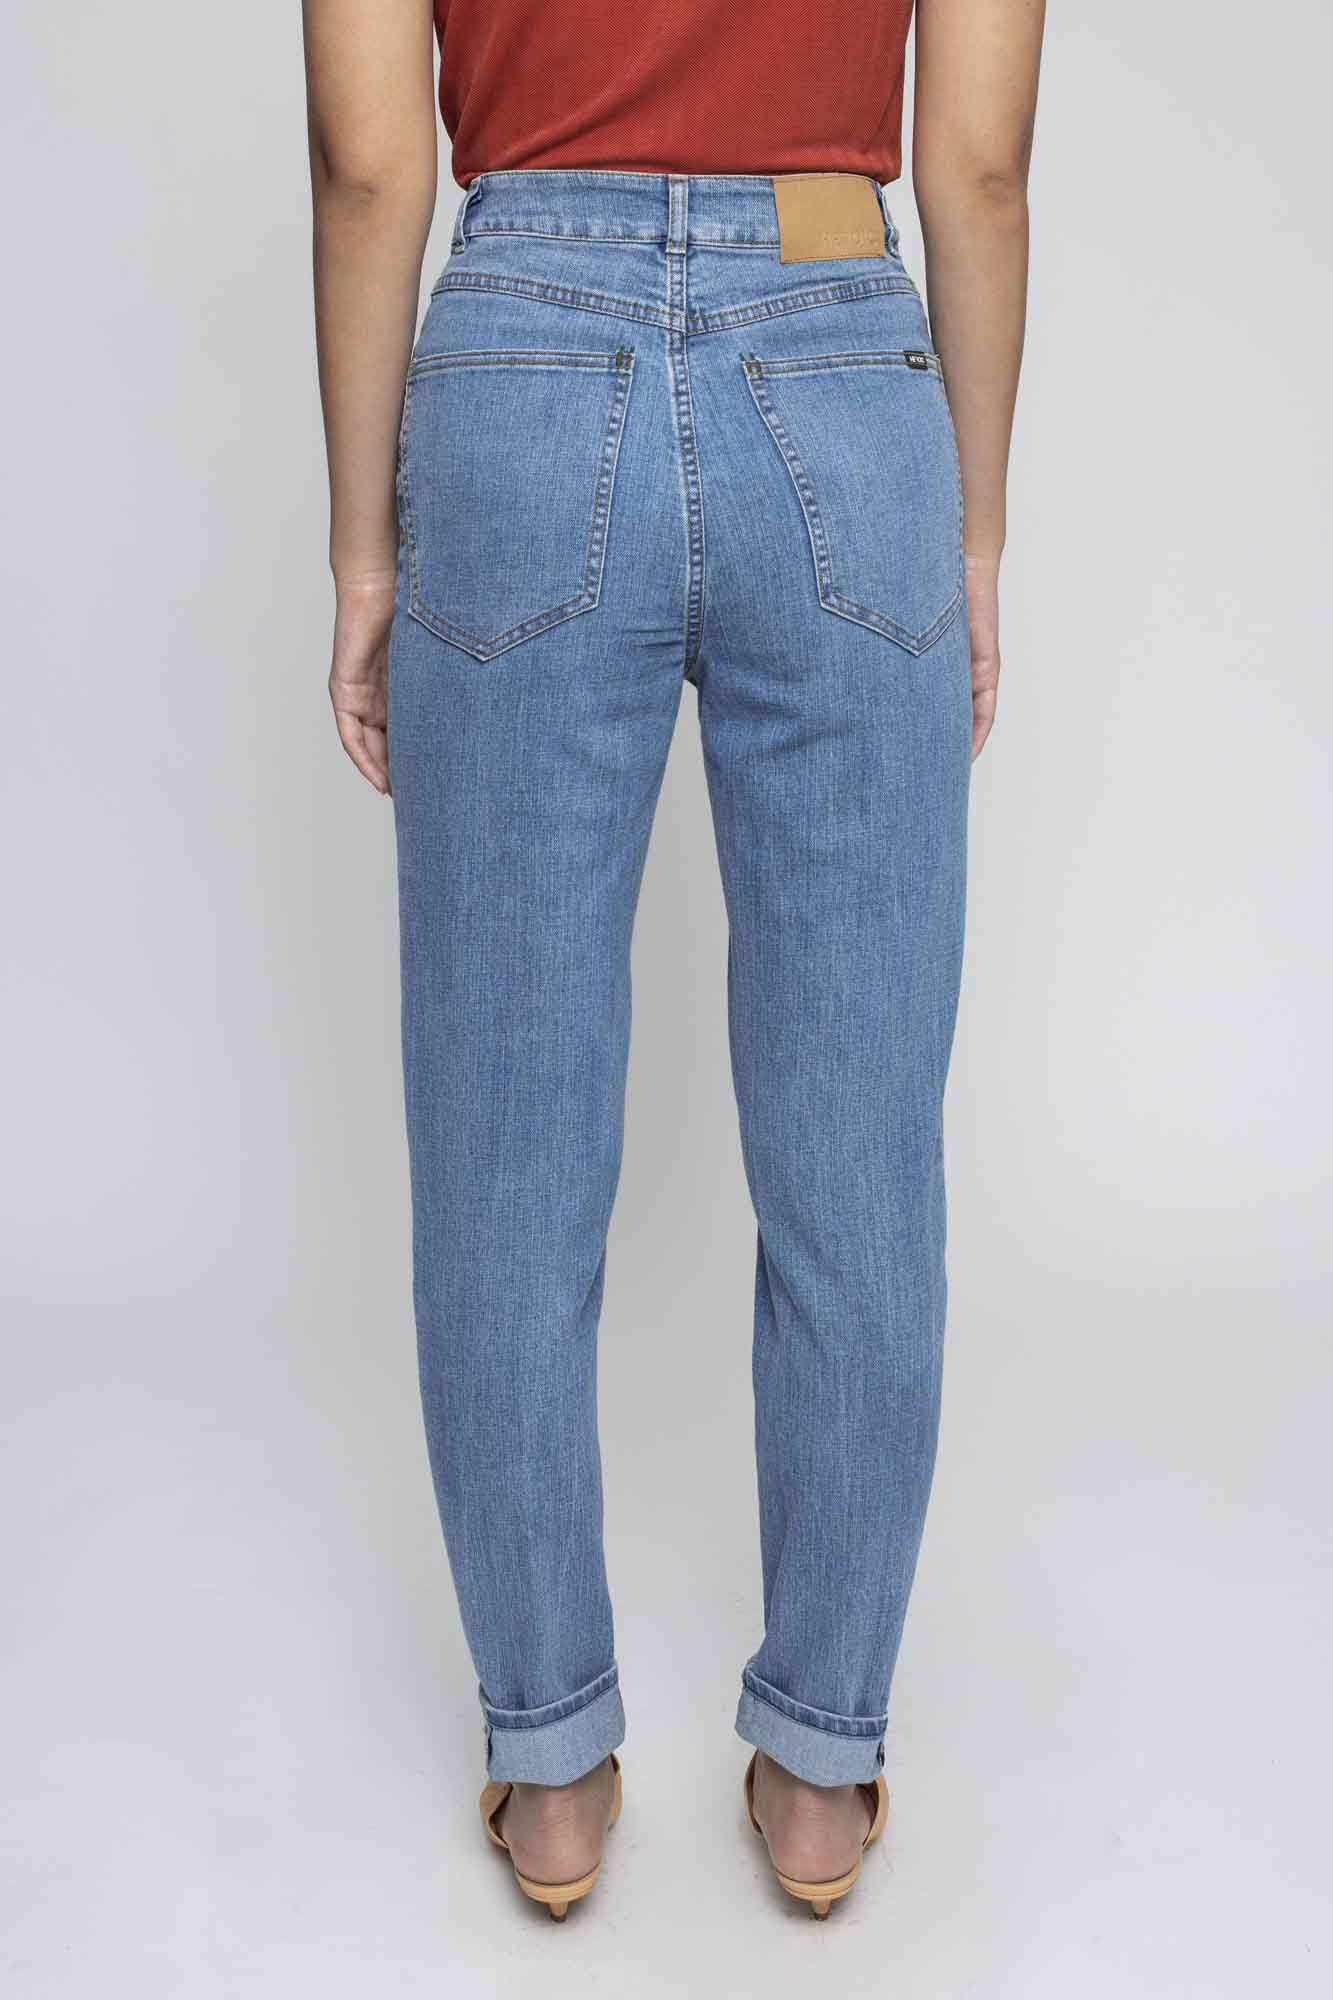 LENNY jeans light blue